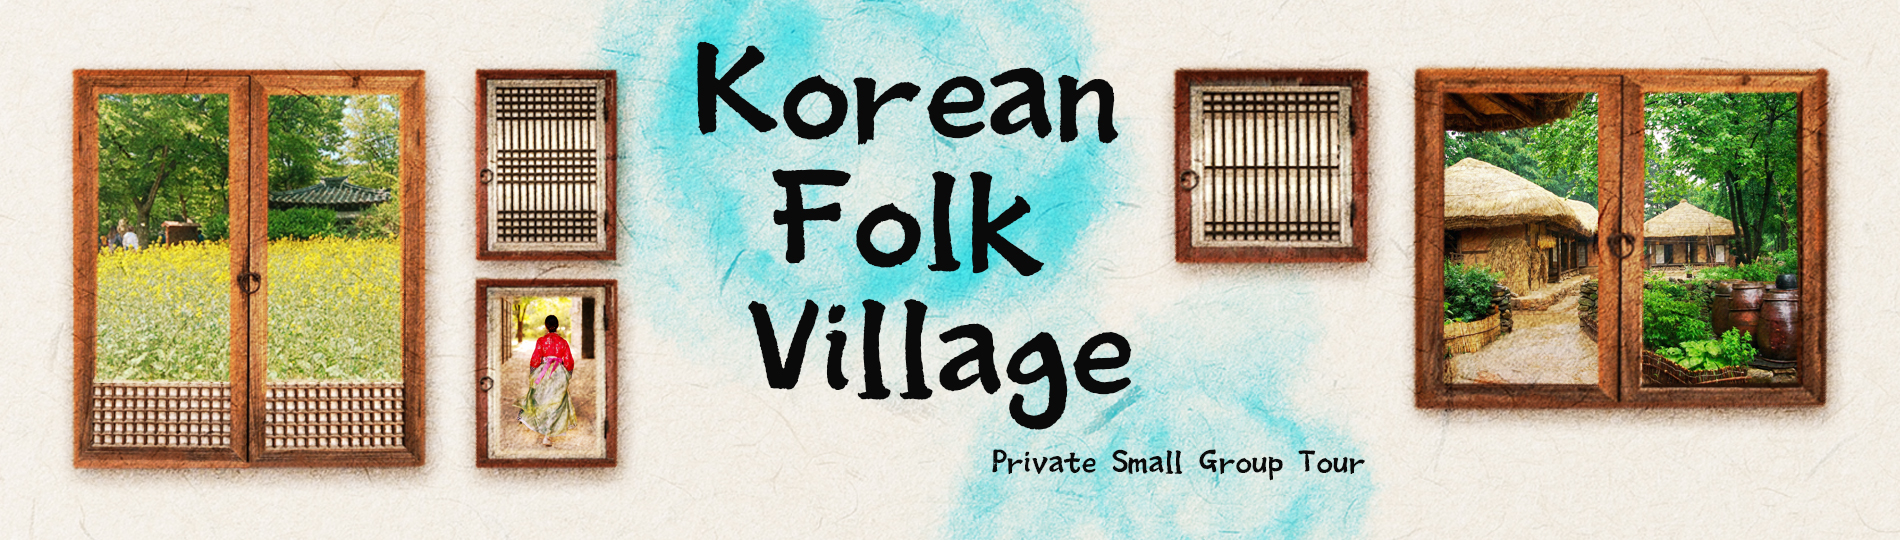 Korean folk village private small group tour